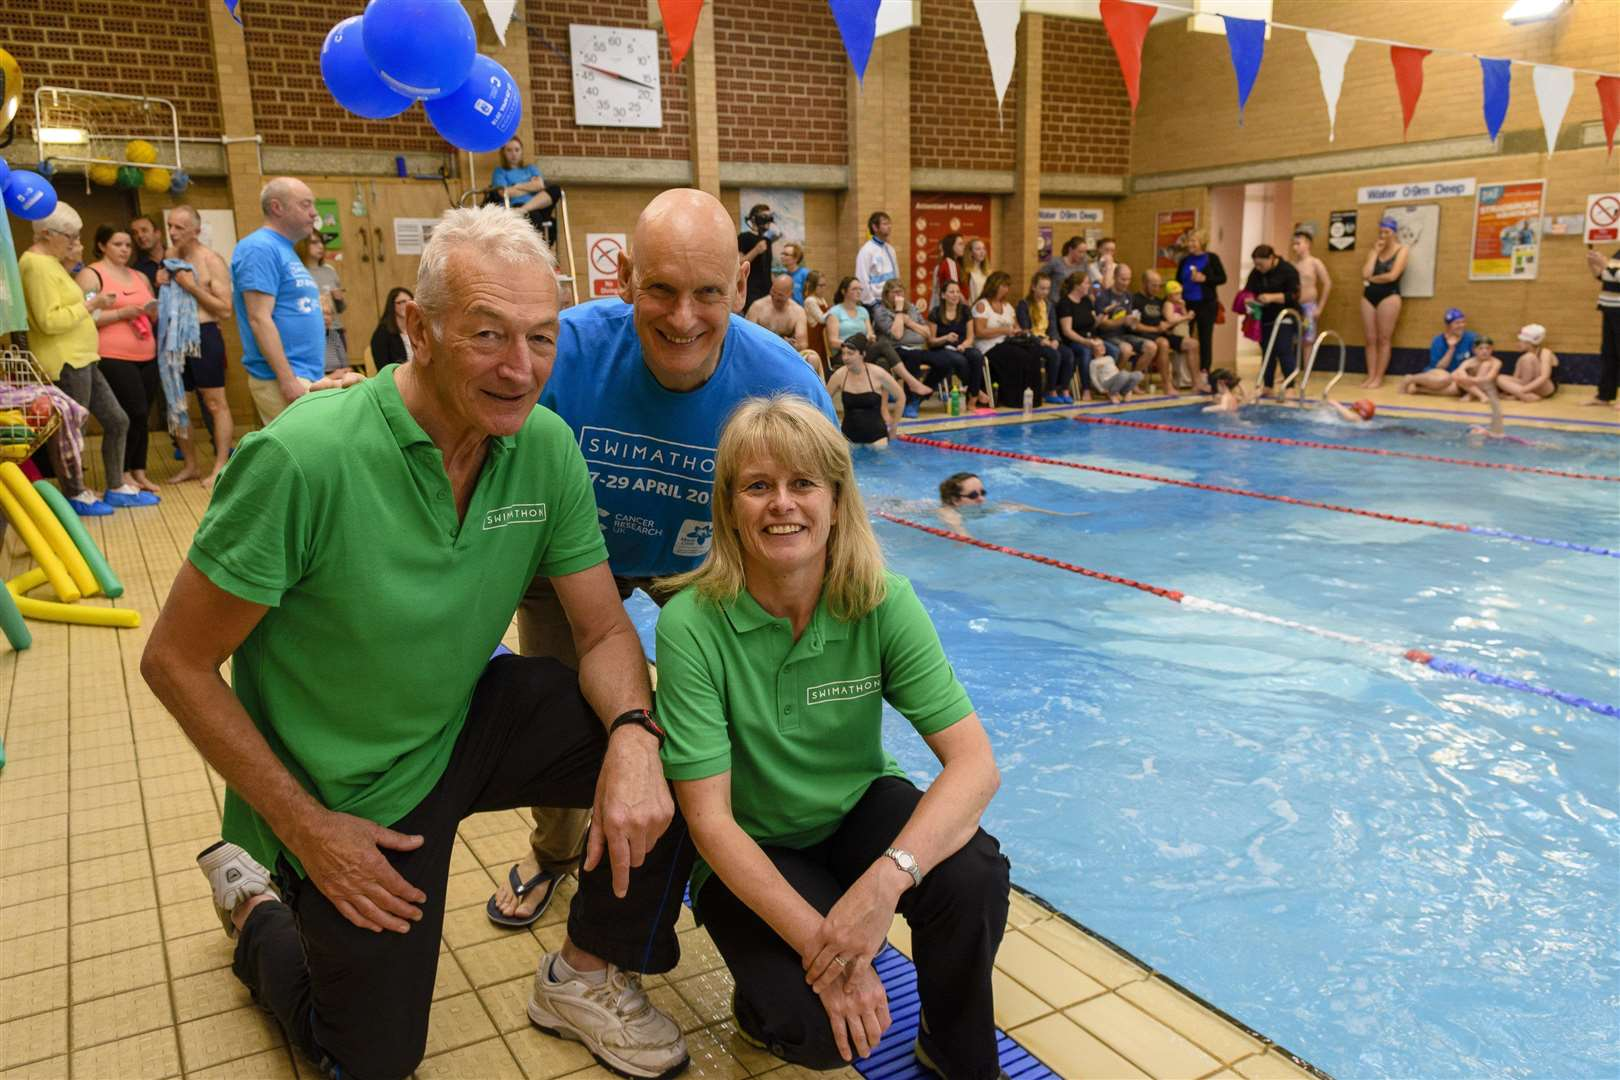 Stradbroke, Suffolk. Swimathon at Stradbroke swimming pool with over 200 swimmers taking part with Duncan Goodhew making a special appearance. Pictured are Len Phoenix, Duncan Goodhew and Maria Smith. Picture: Mark Bullimore Photography (1978630)